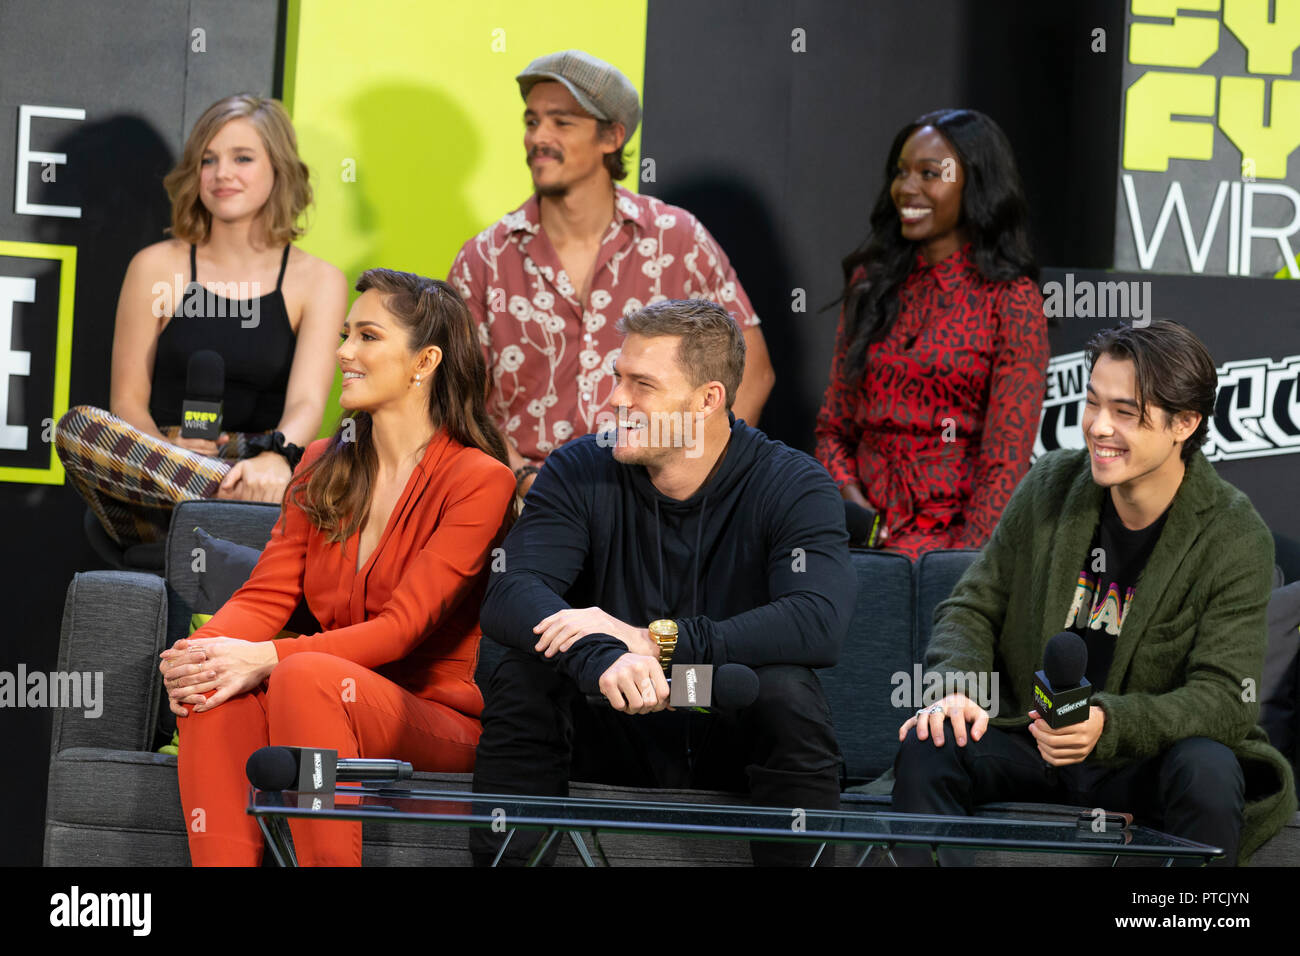 new york ny october 5 2018 titans tv show cast and crew attend